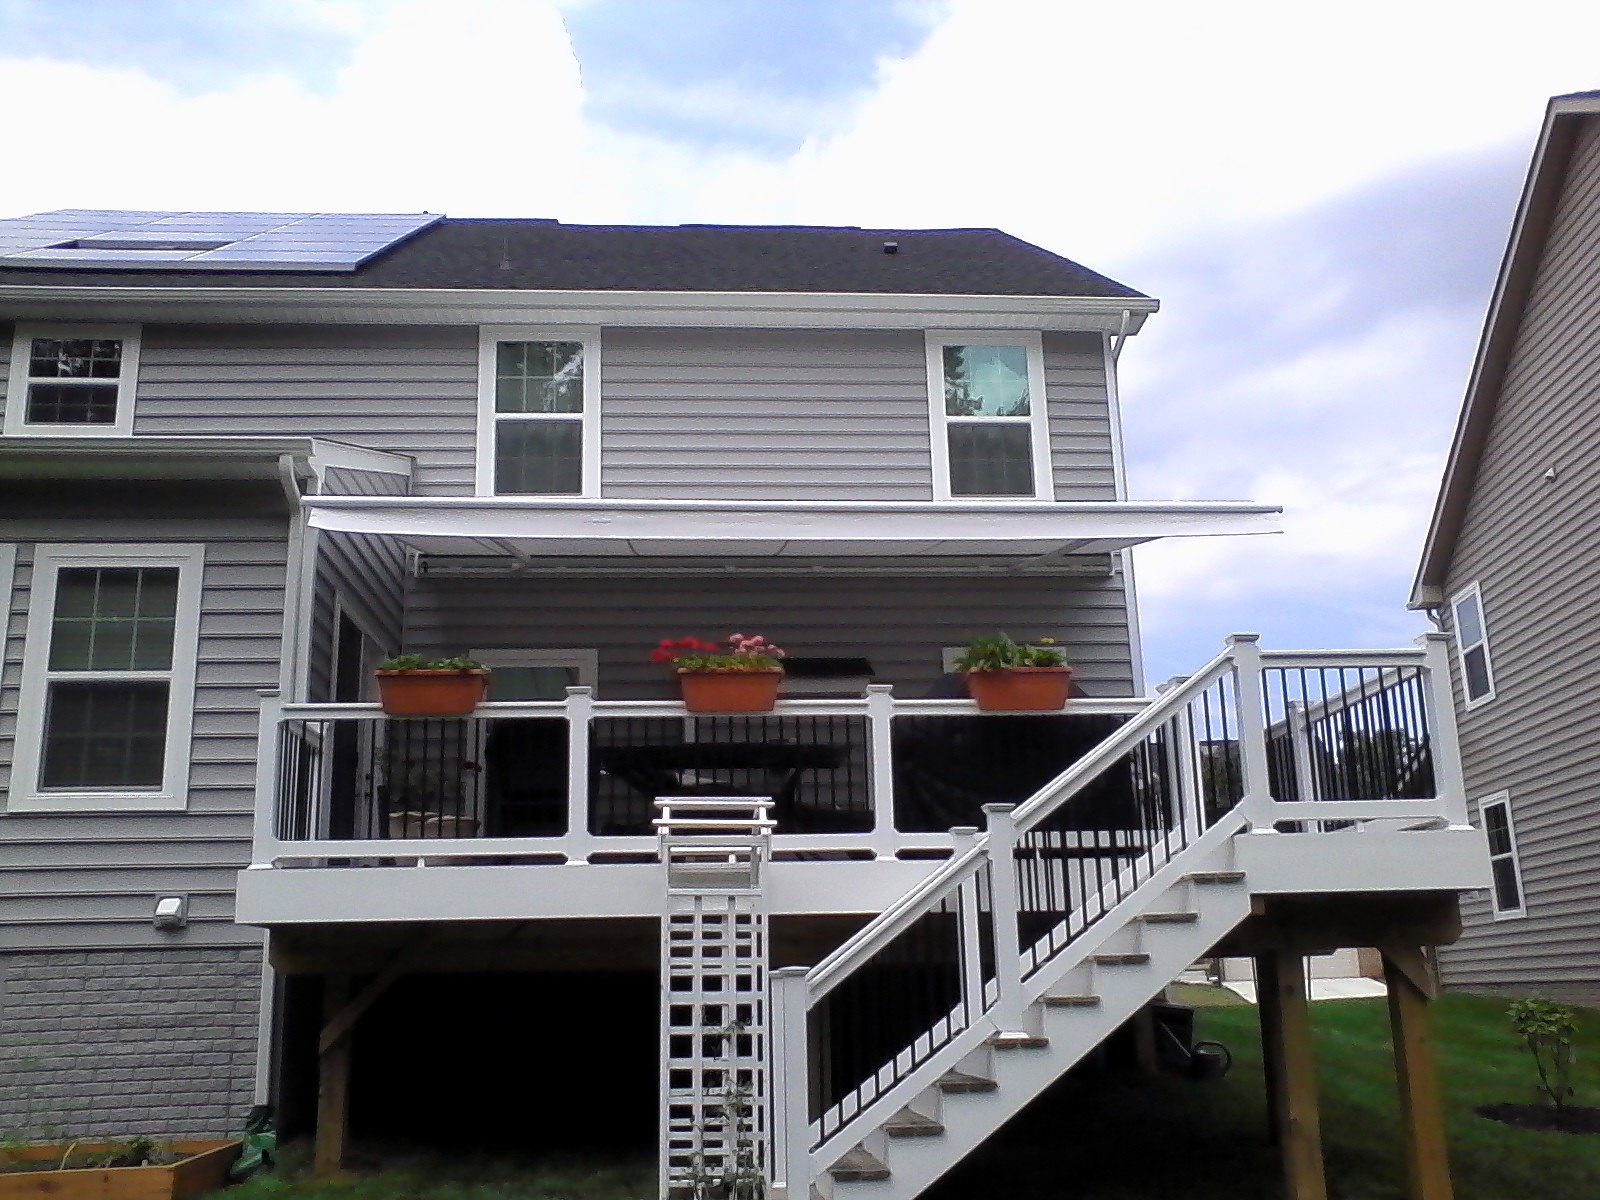 No Valance-deck-retractable-awning-baltimore